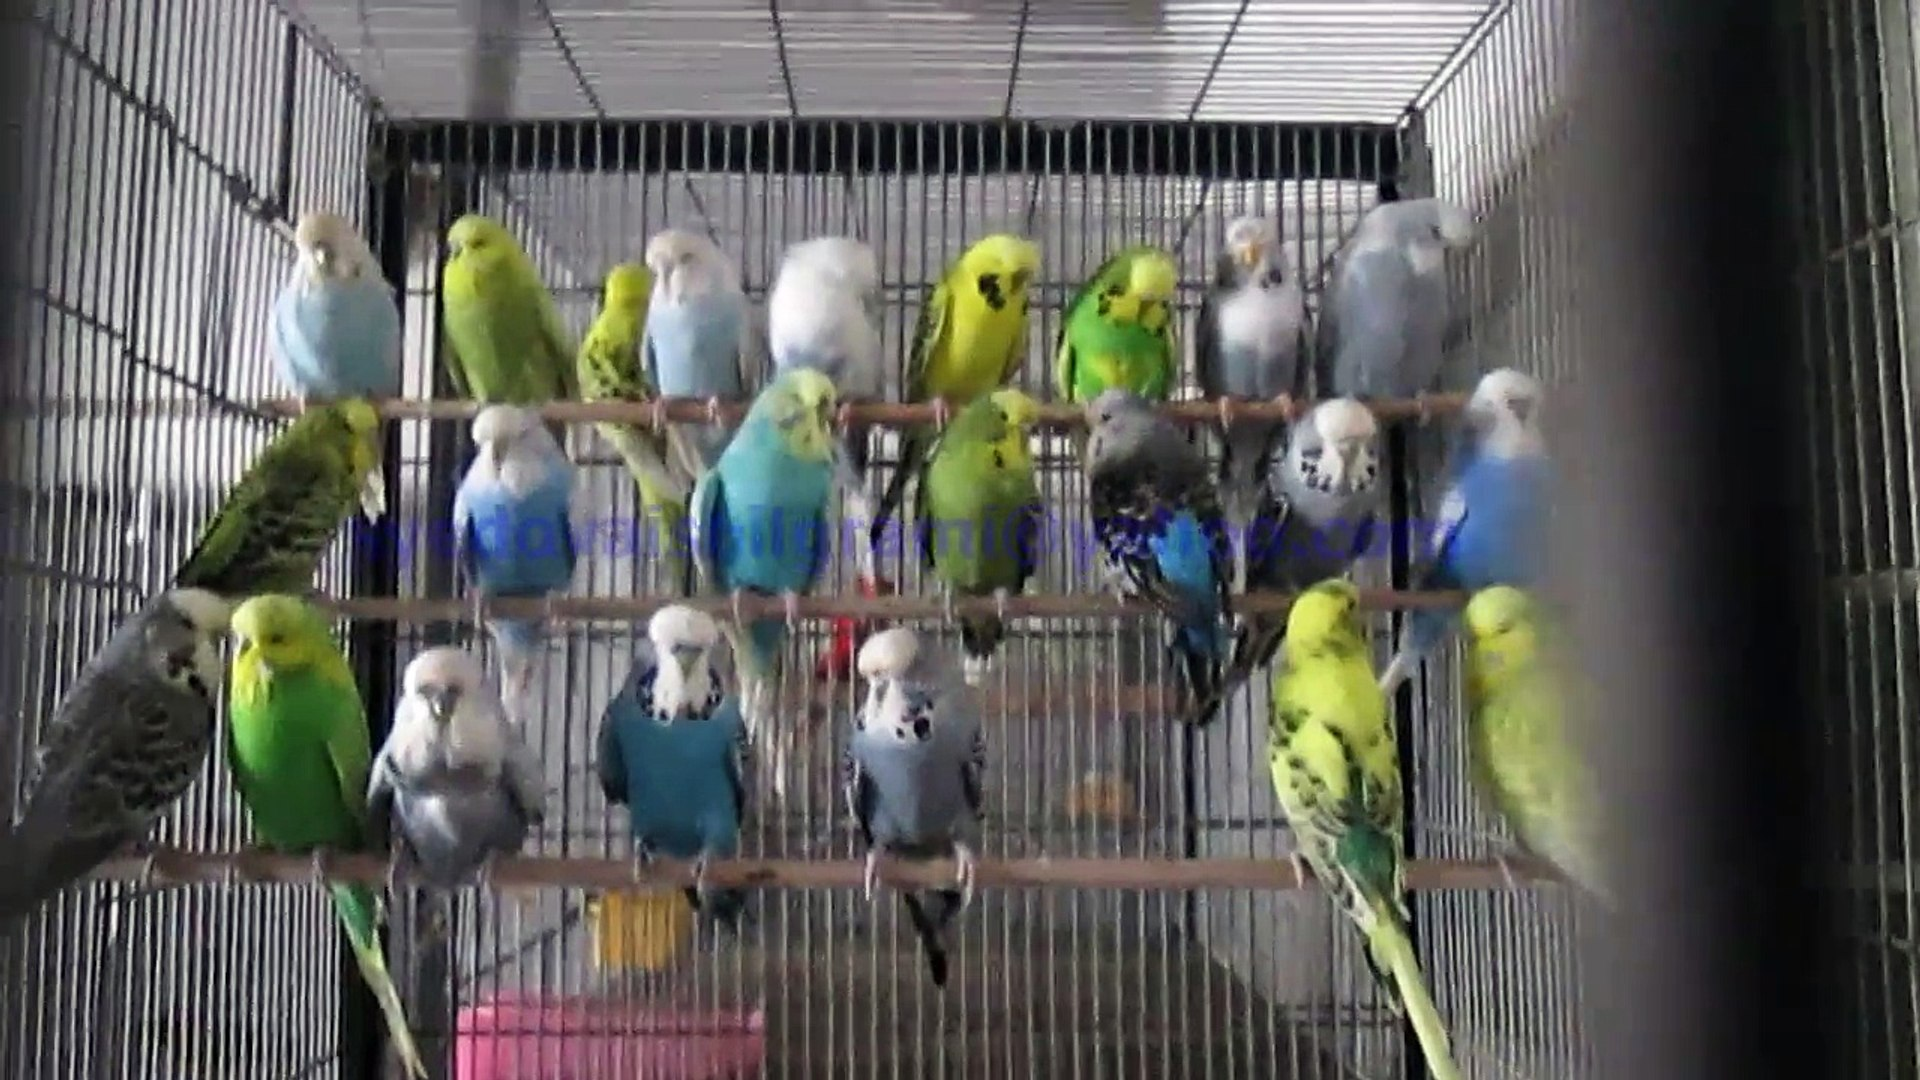 Exhibition Budgies of Syed Ovais Bilgrami